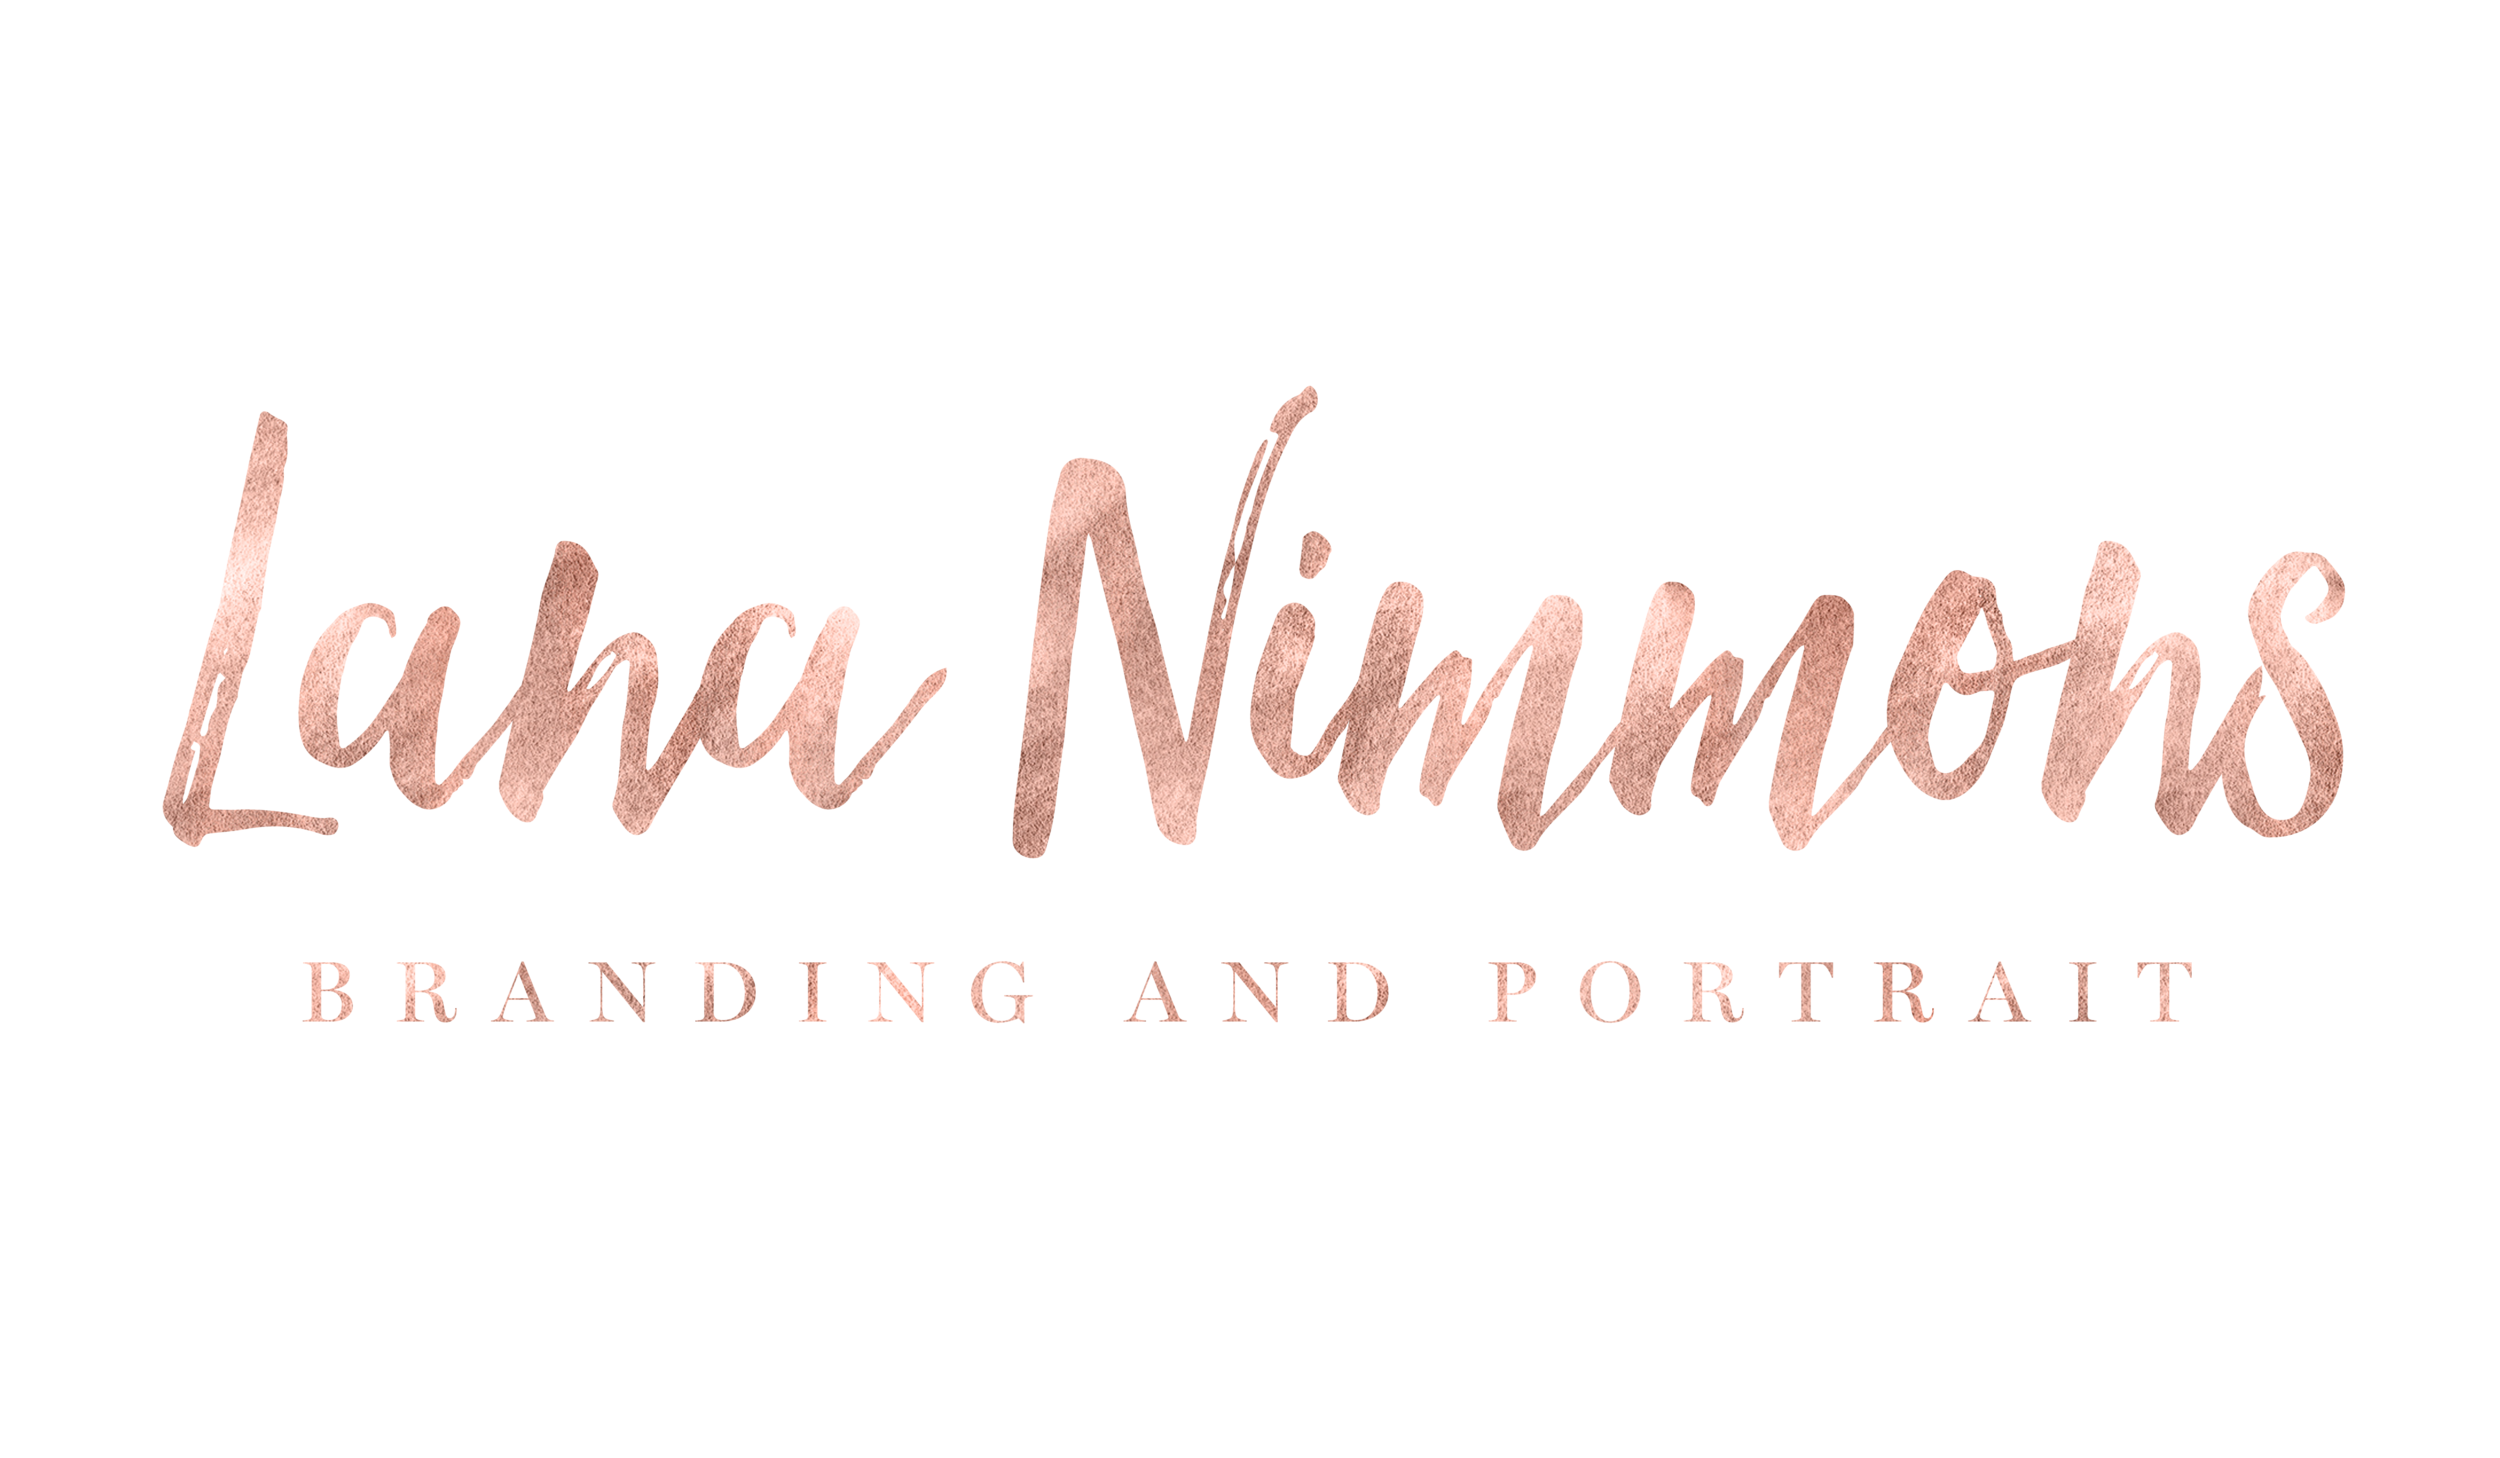 Lana Nimmons branding photography